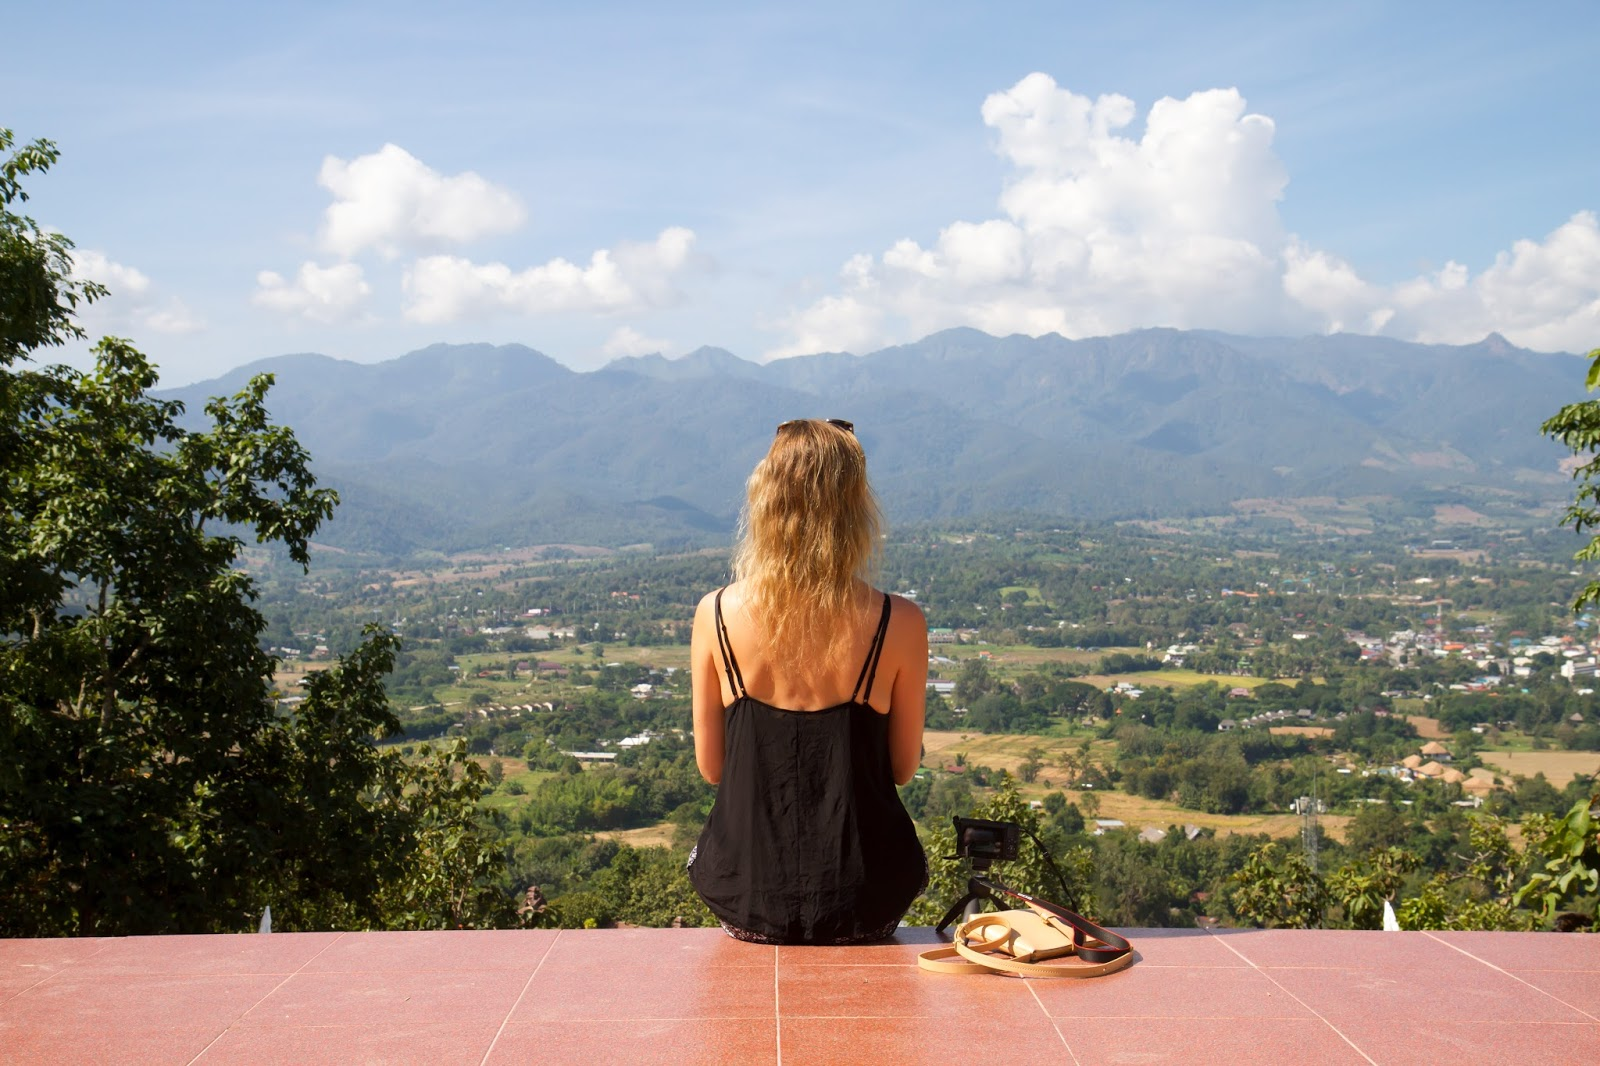 View from the White Buddha, Pai, Thailand